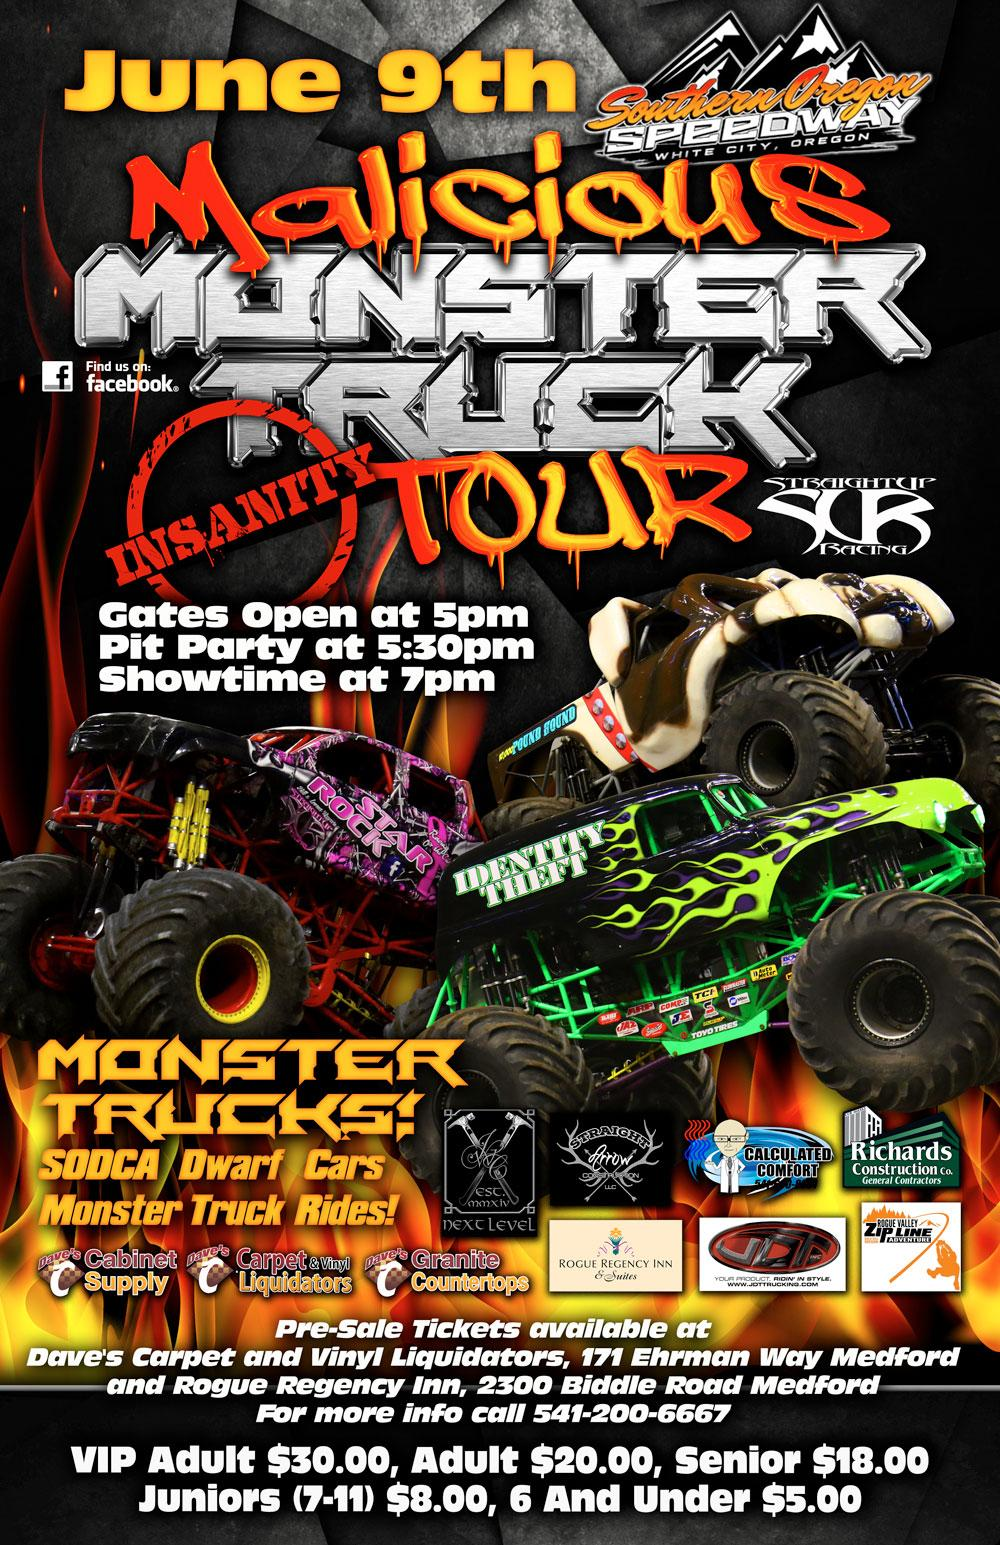 Malicious Monster Truck Tour at Southern Oregon Speedway Tickets in Central Point, OR, United States